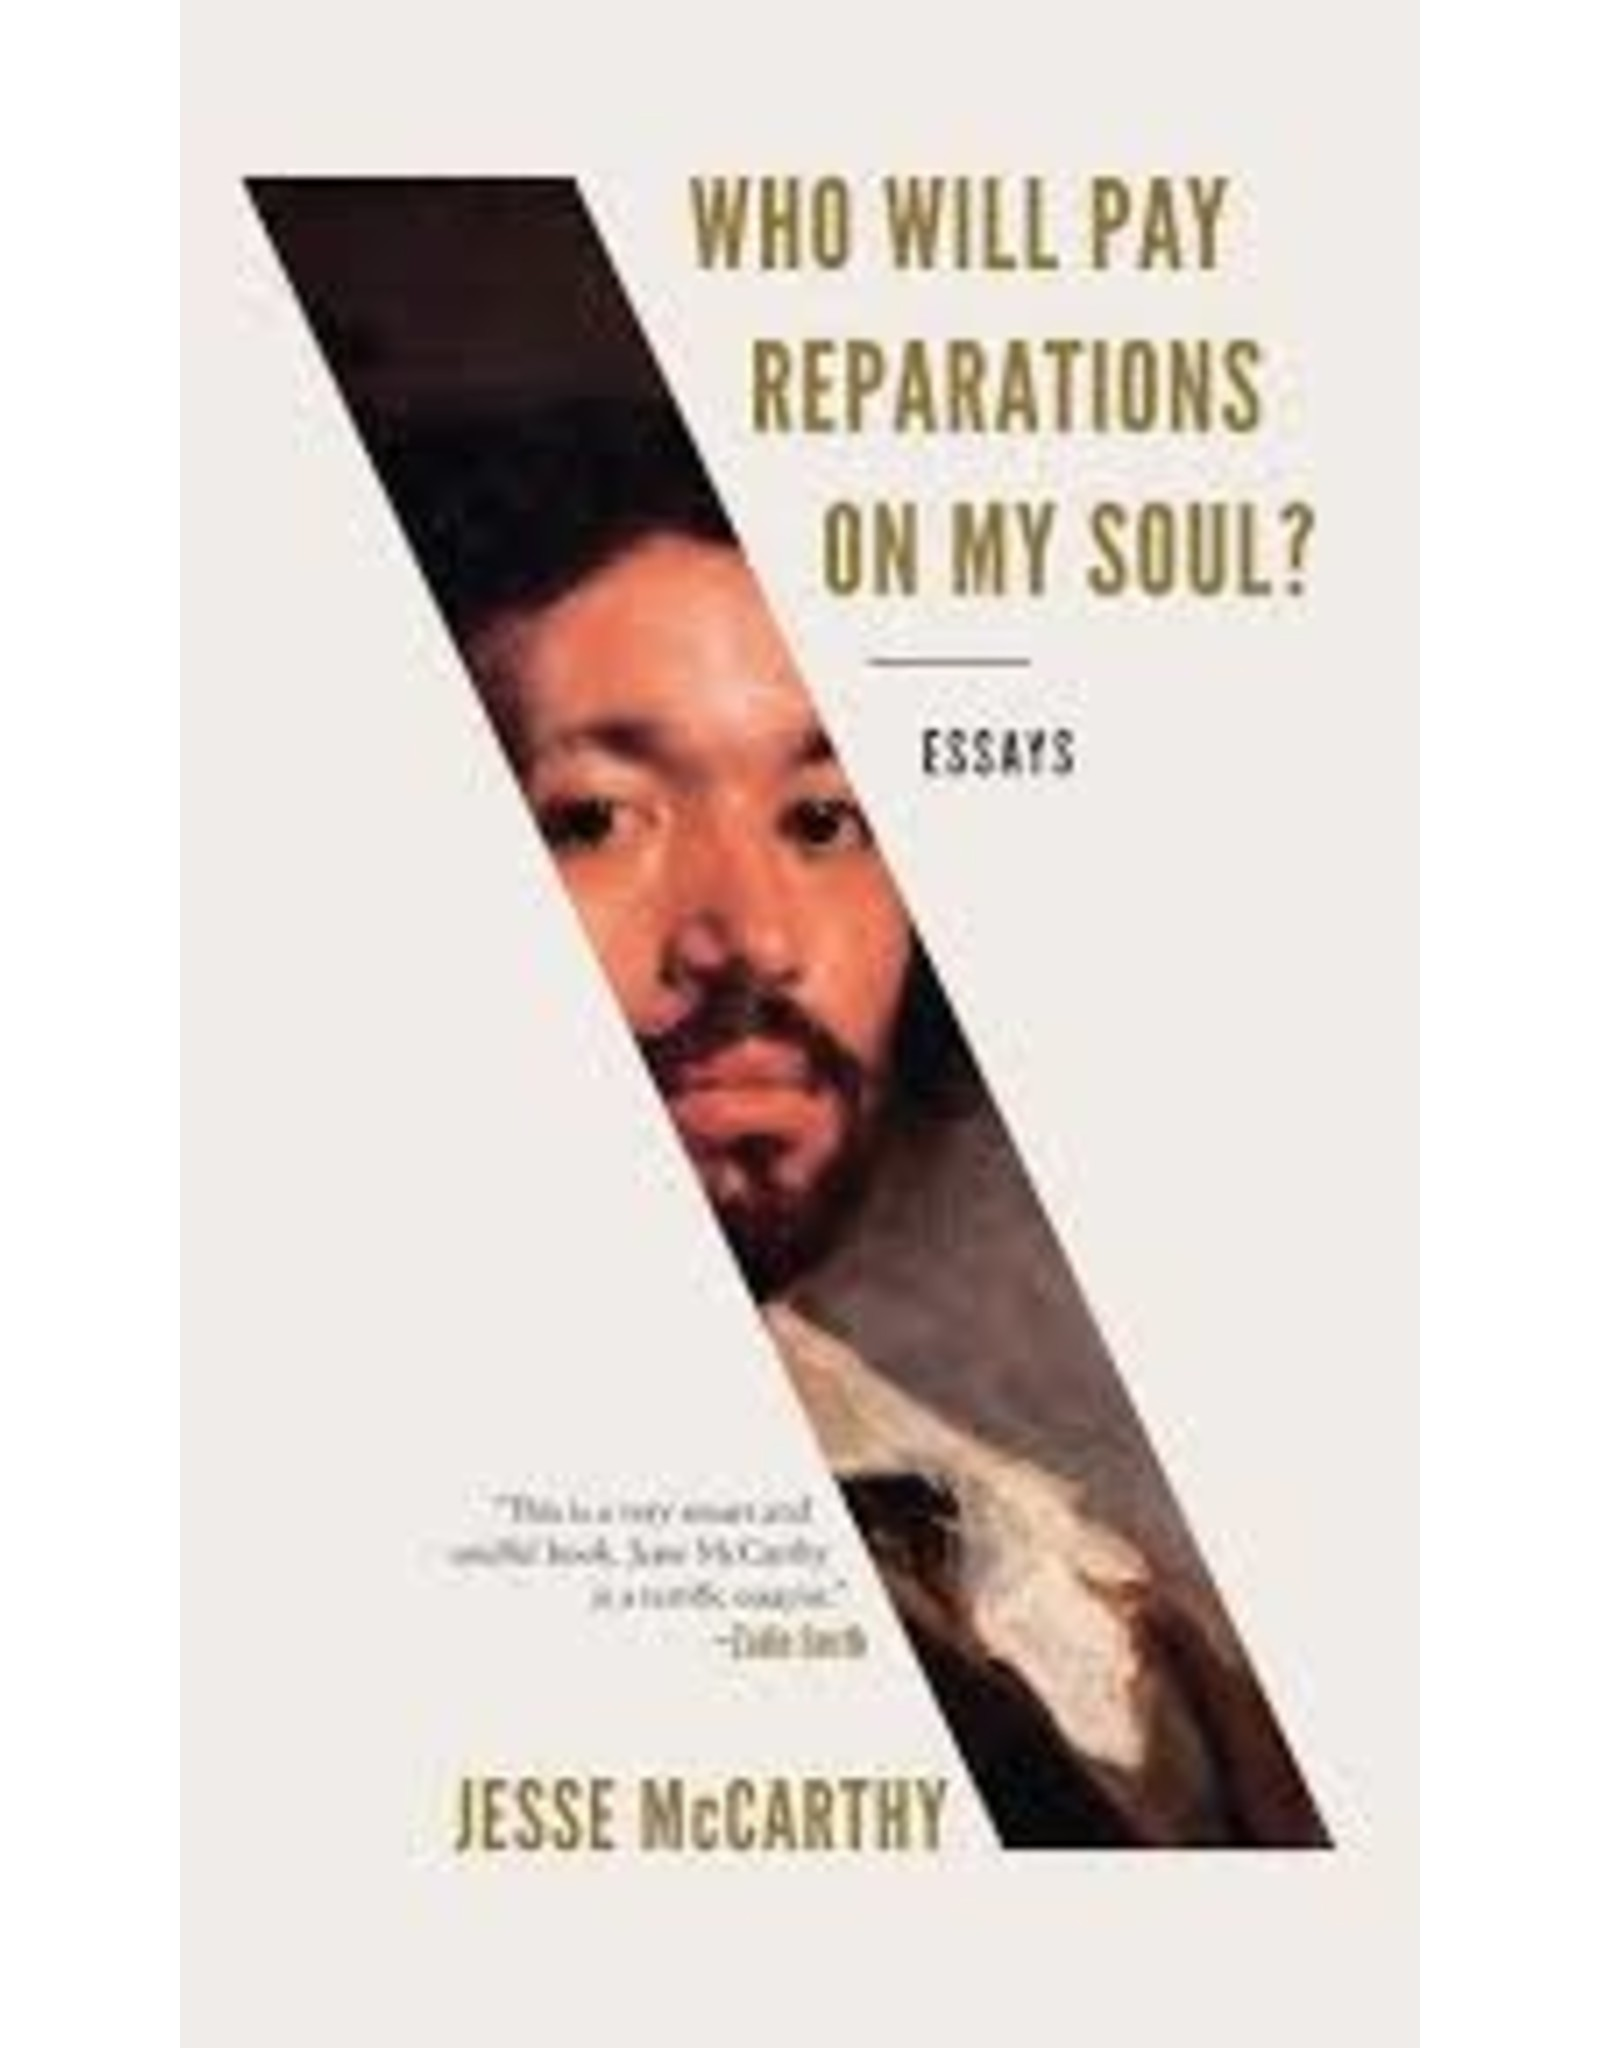 Books Who Will Play Reparations on my Soul? Essays by Jesse McCarthy